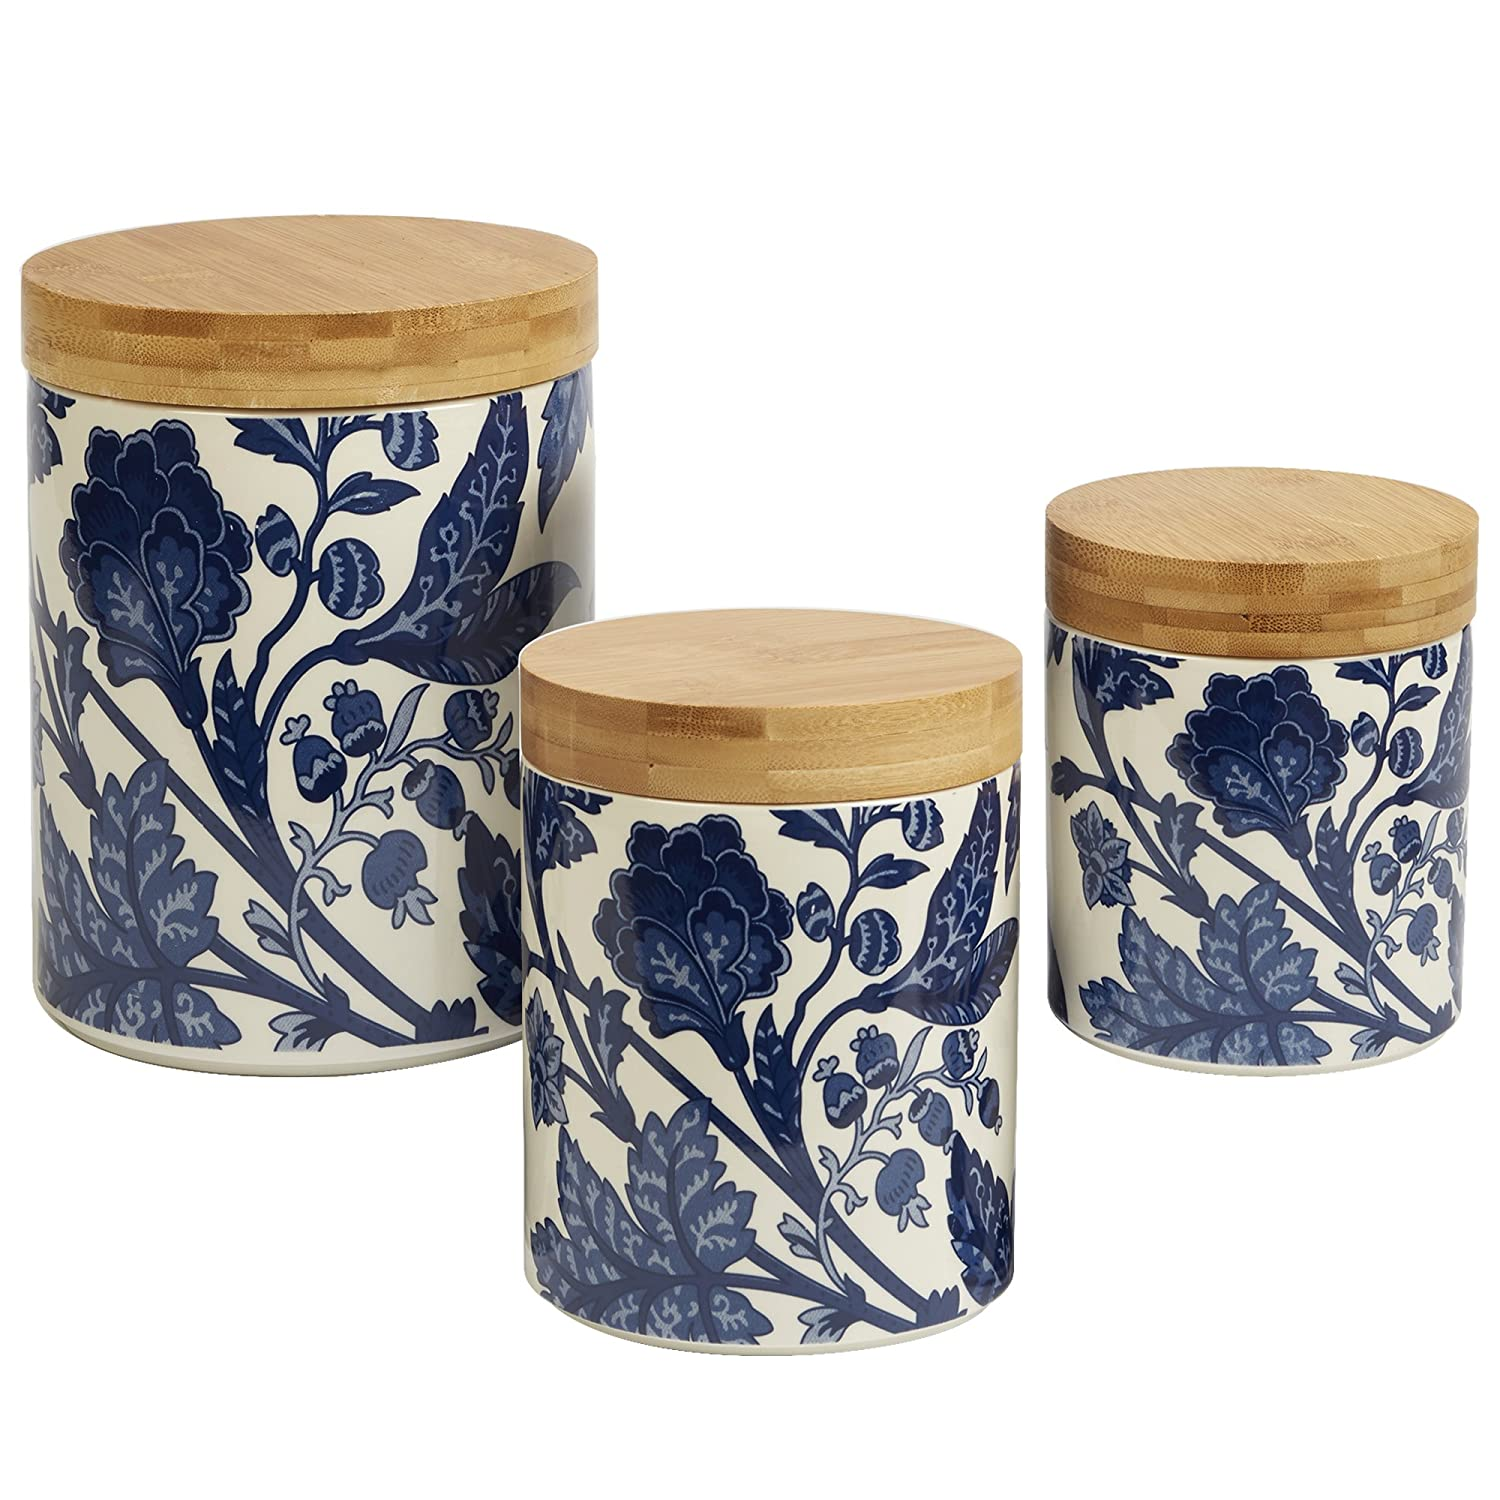 Certified International 24353 Blue Indigo Canister Set with Wooden Lids, Multicolor